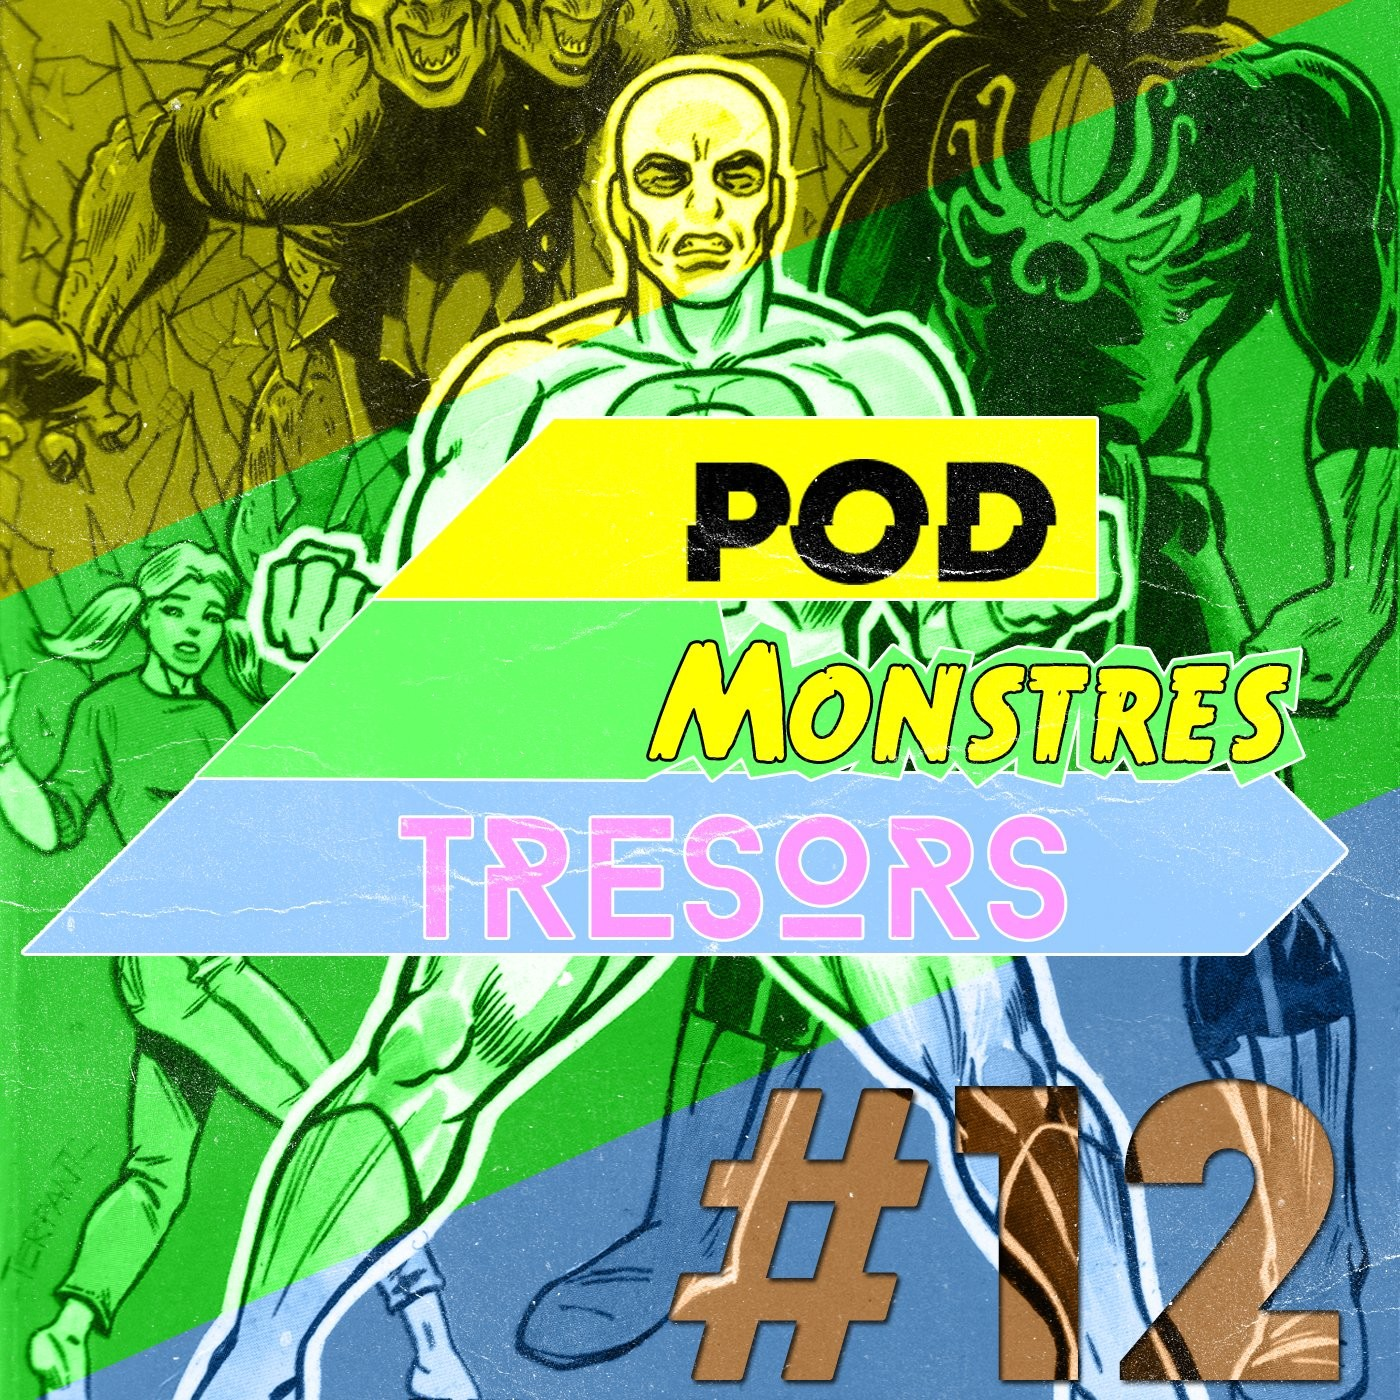 Pod Monstres Trésors Ep 12 : Right Before Your Eyes